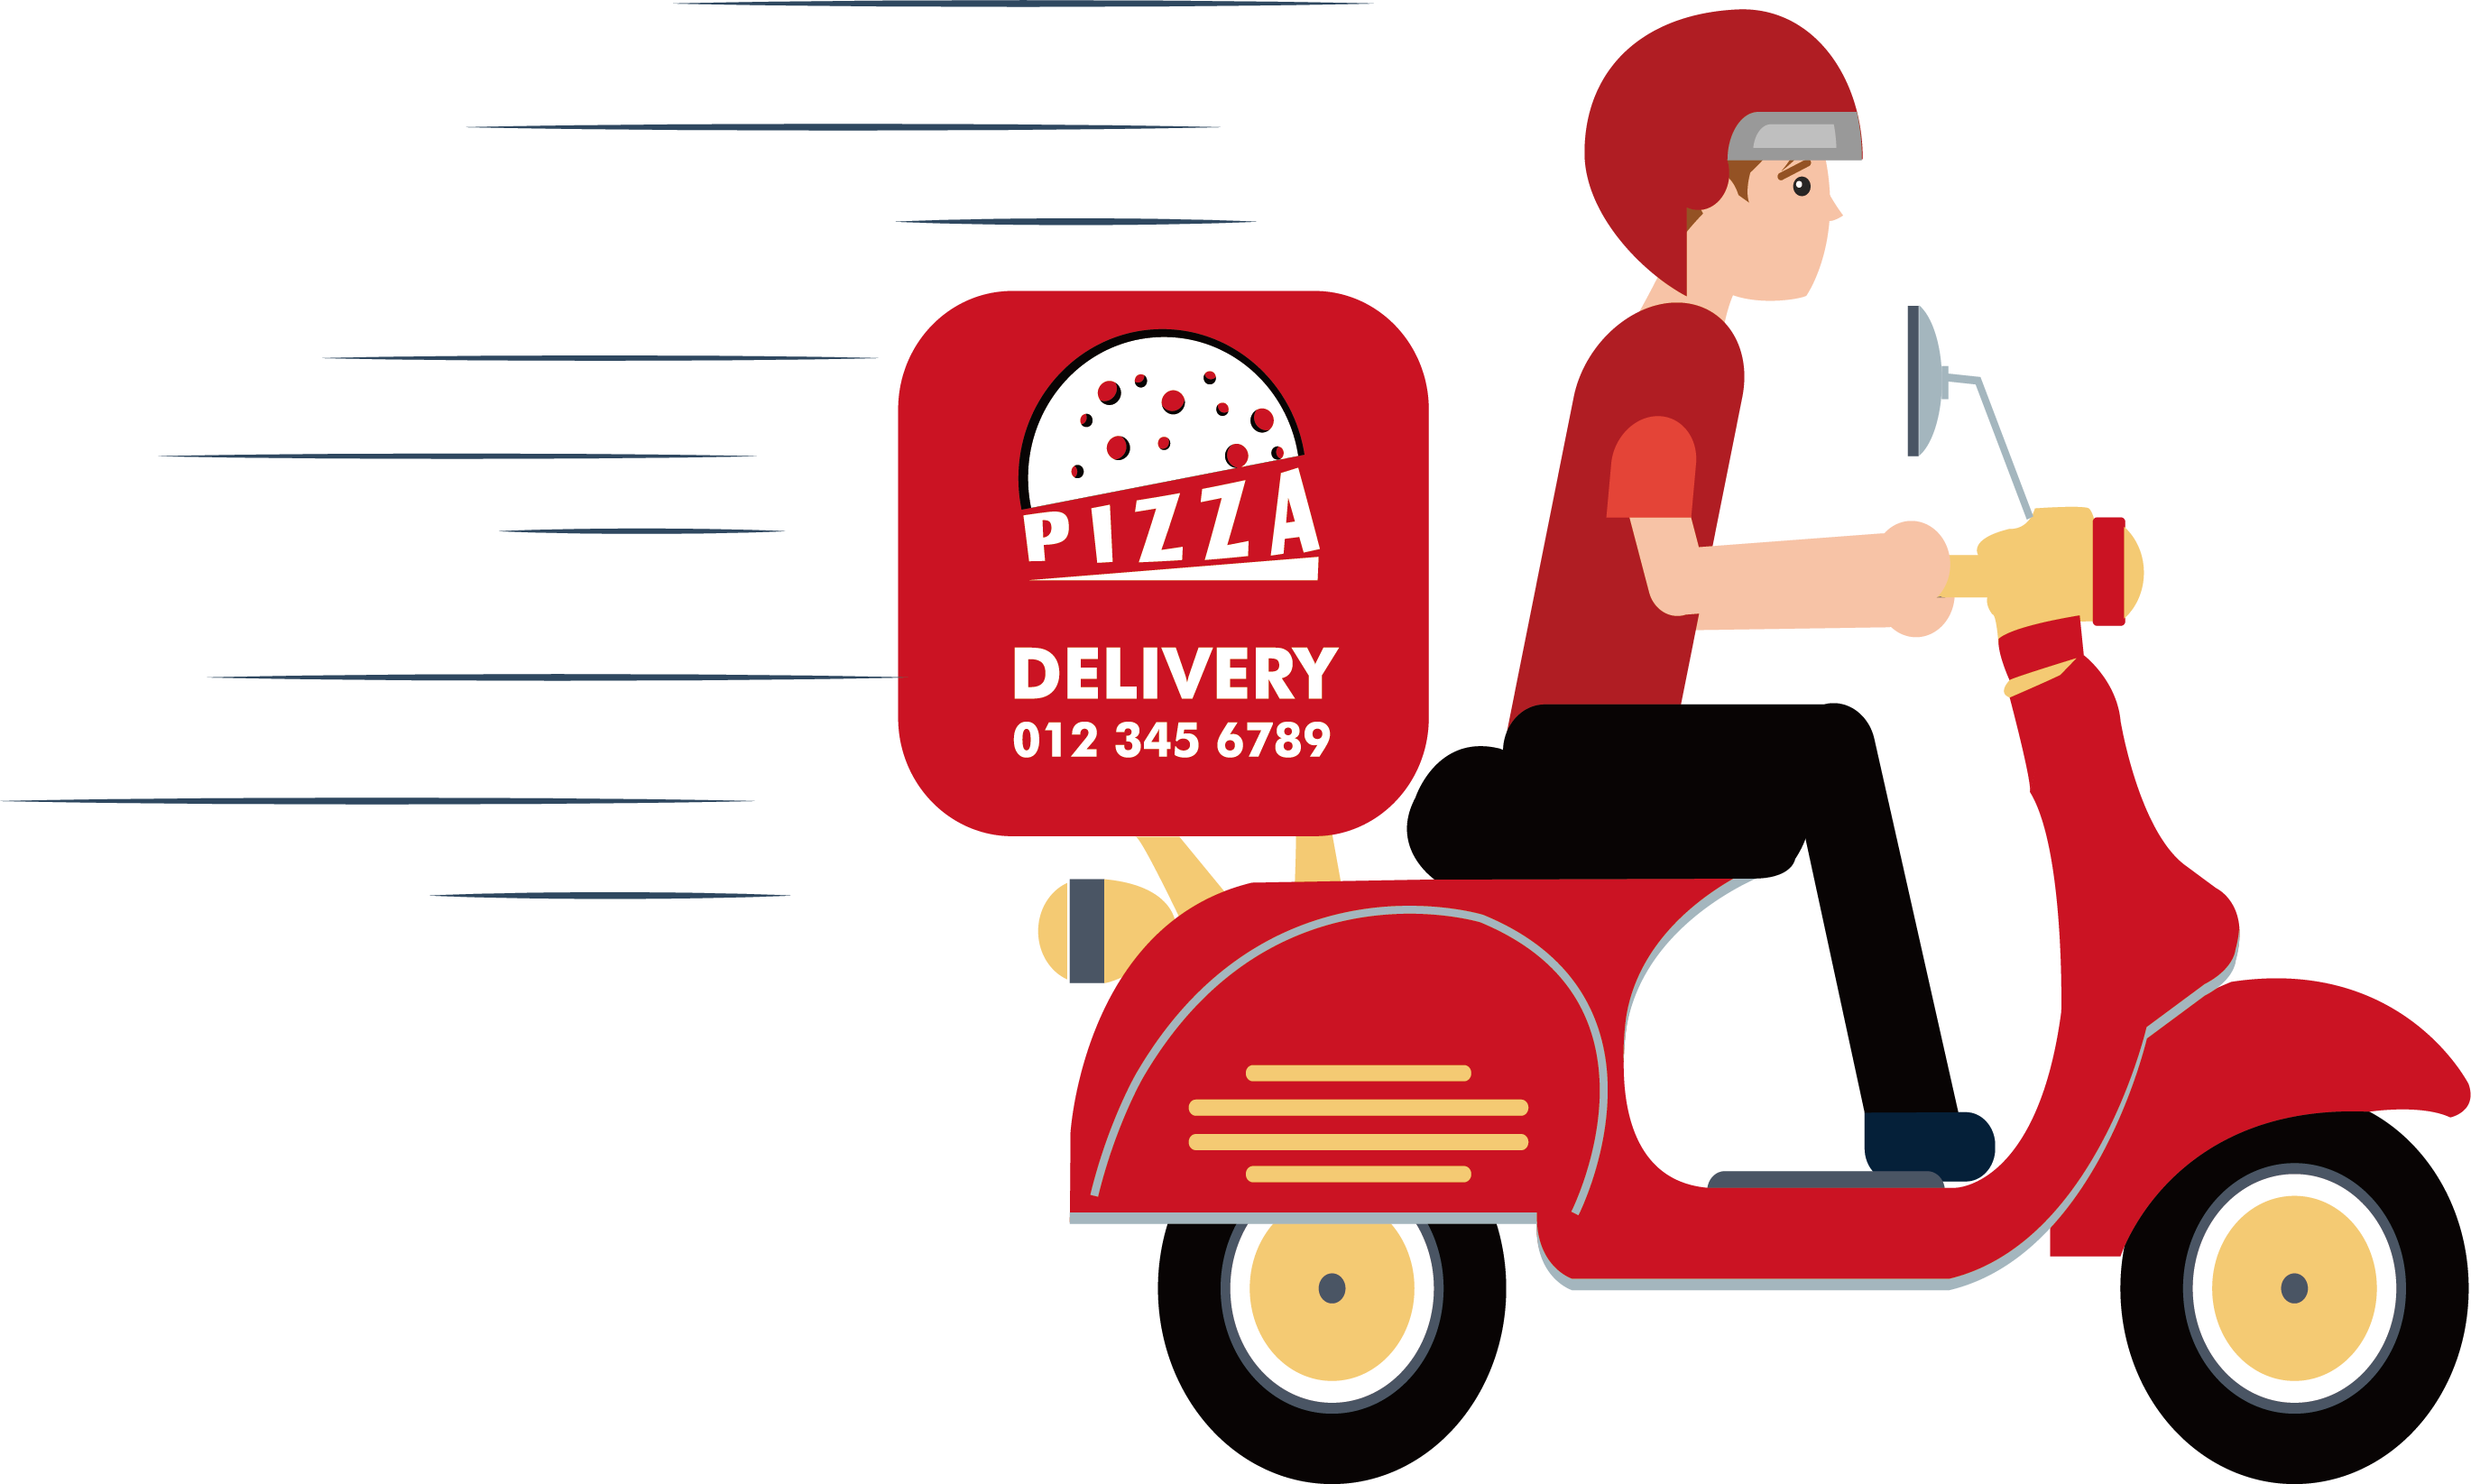 Motorcycle clipart pizza. Delivery scooter clip arts